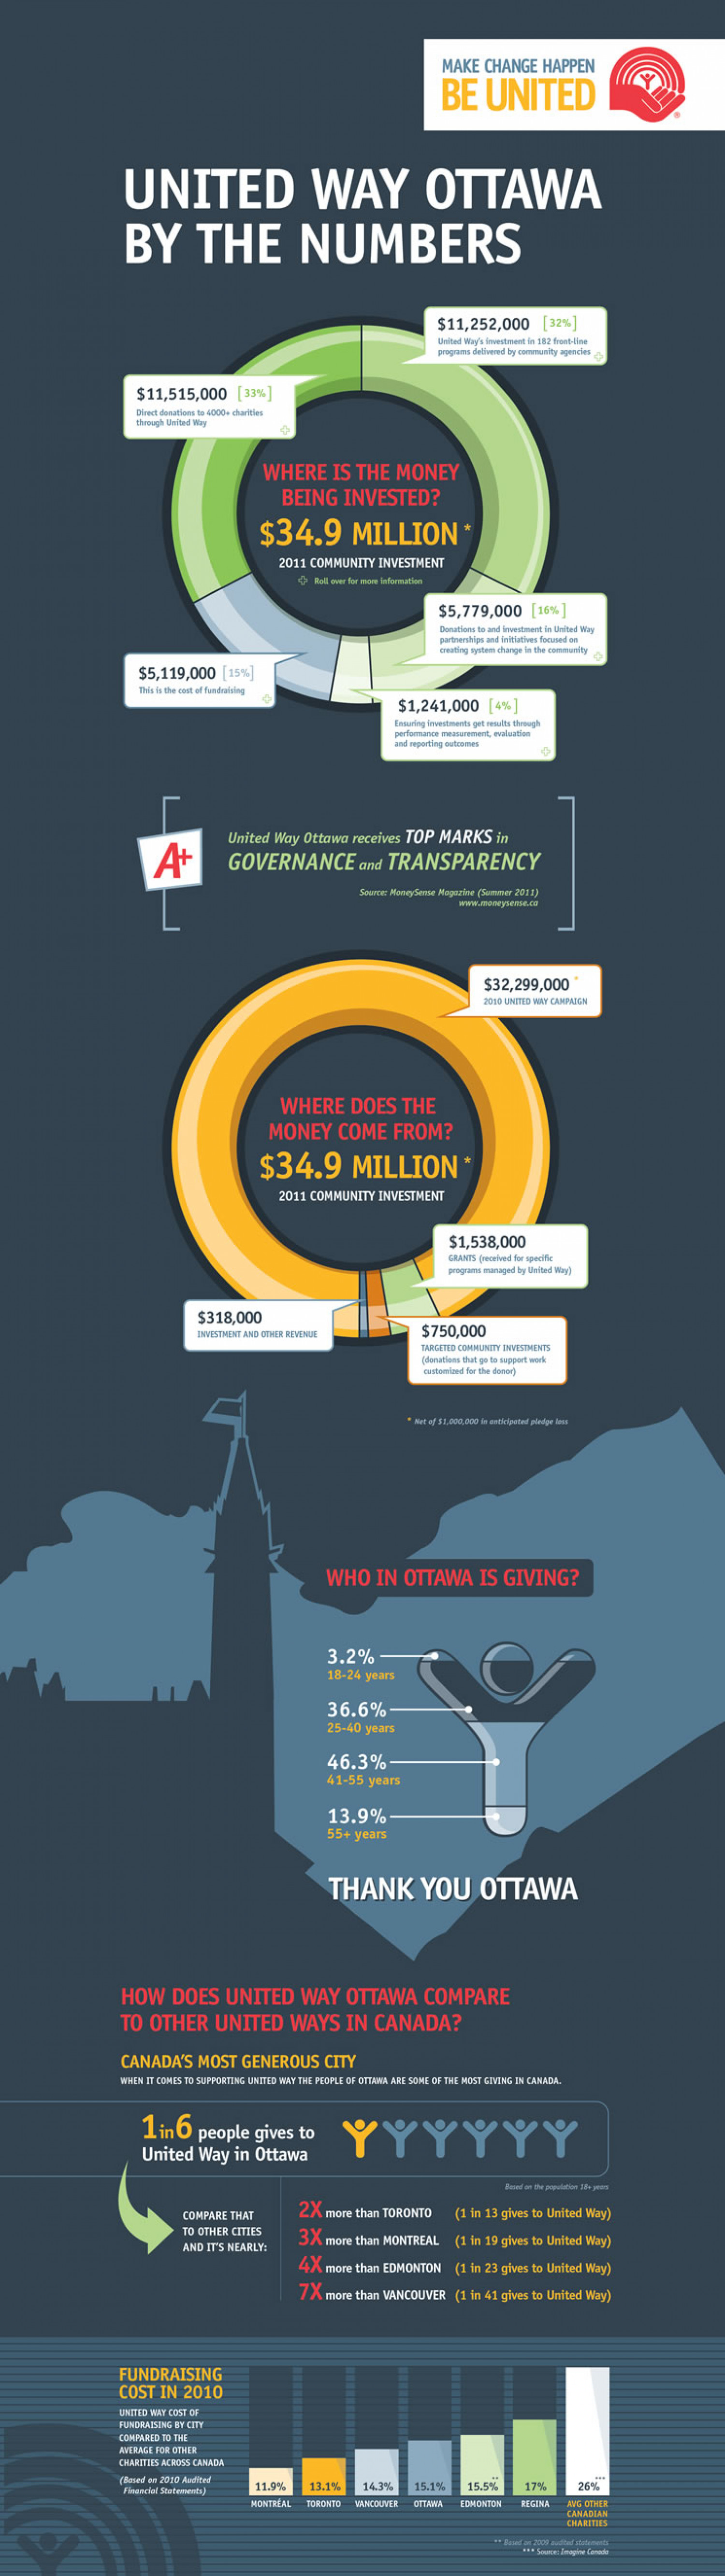 United Way Ottawa by the Numbers Infographic